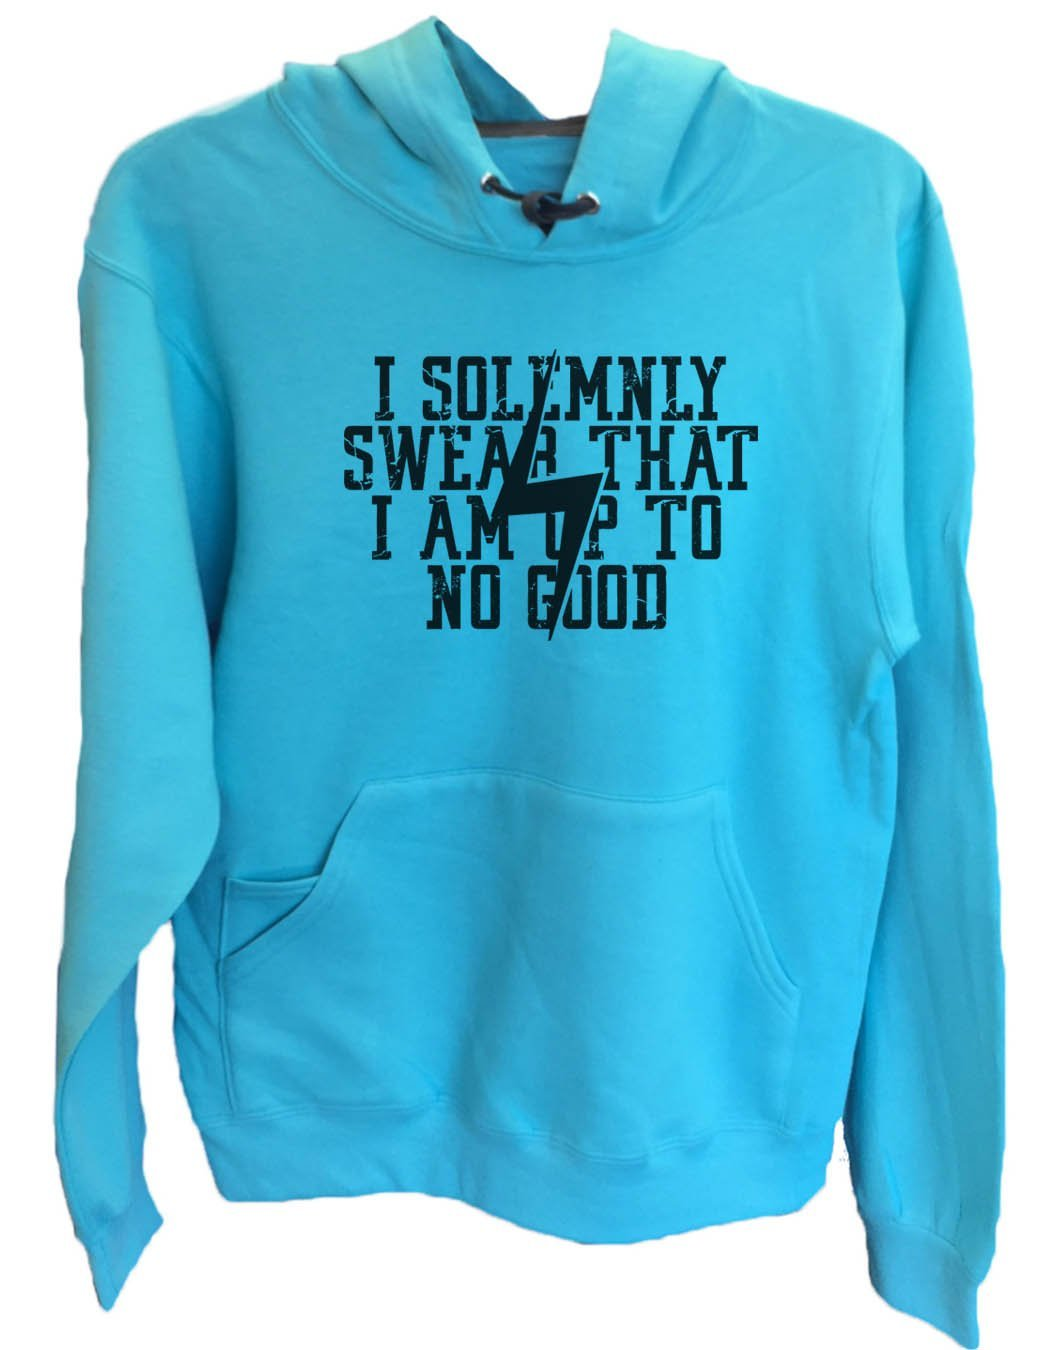 UNISEX HOODIE - I Solemnly Swear That I Am Up To No Good - FUNNY MENS AND WOMENS HOODED SWEATSHIRTS - 2136 Funny Shirt Small / Turquoise